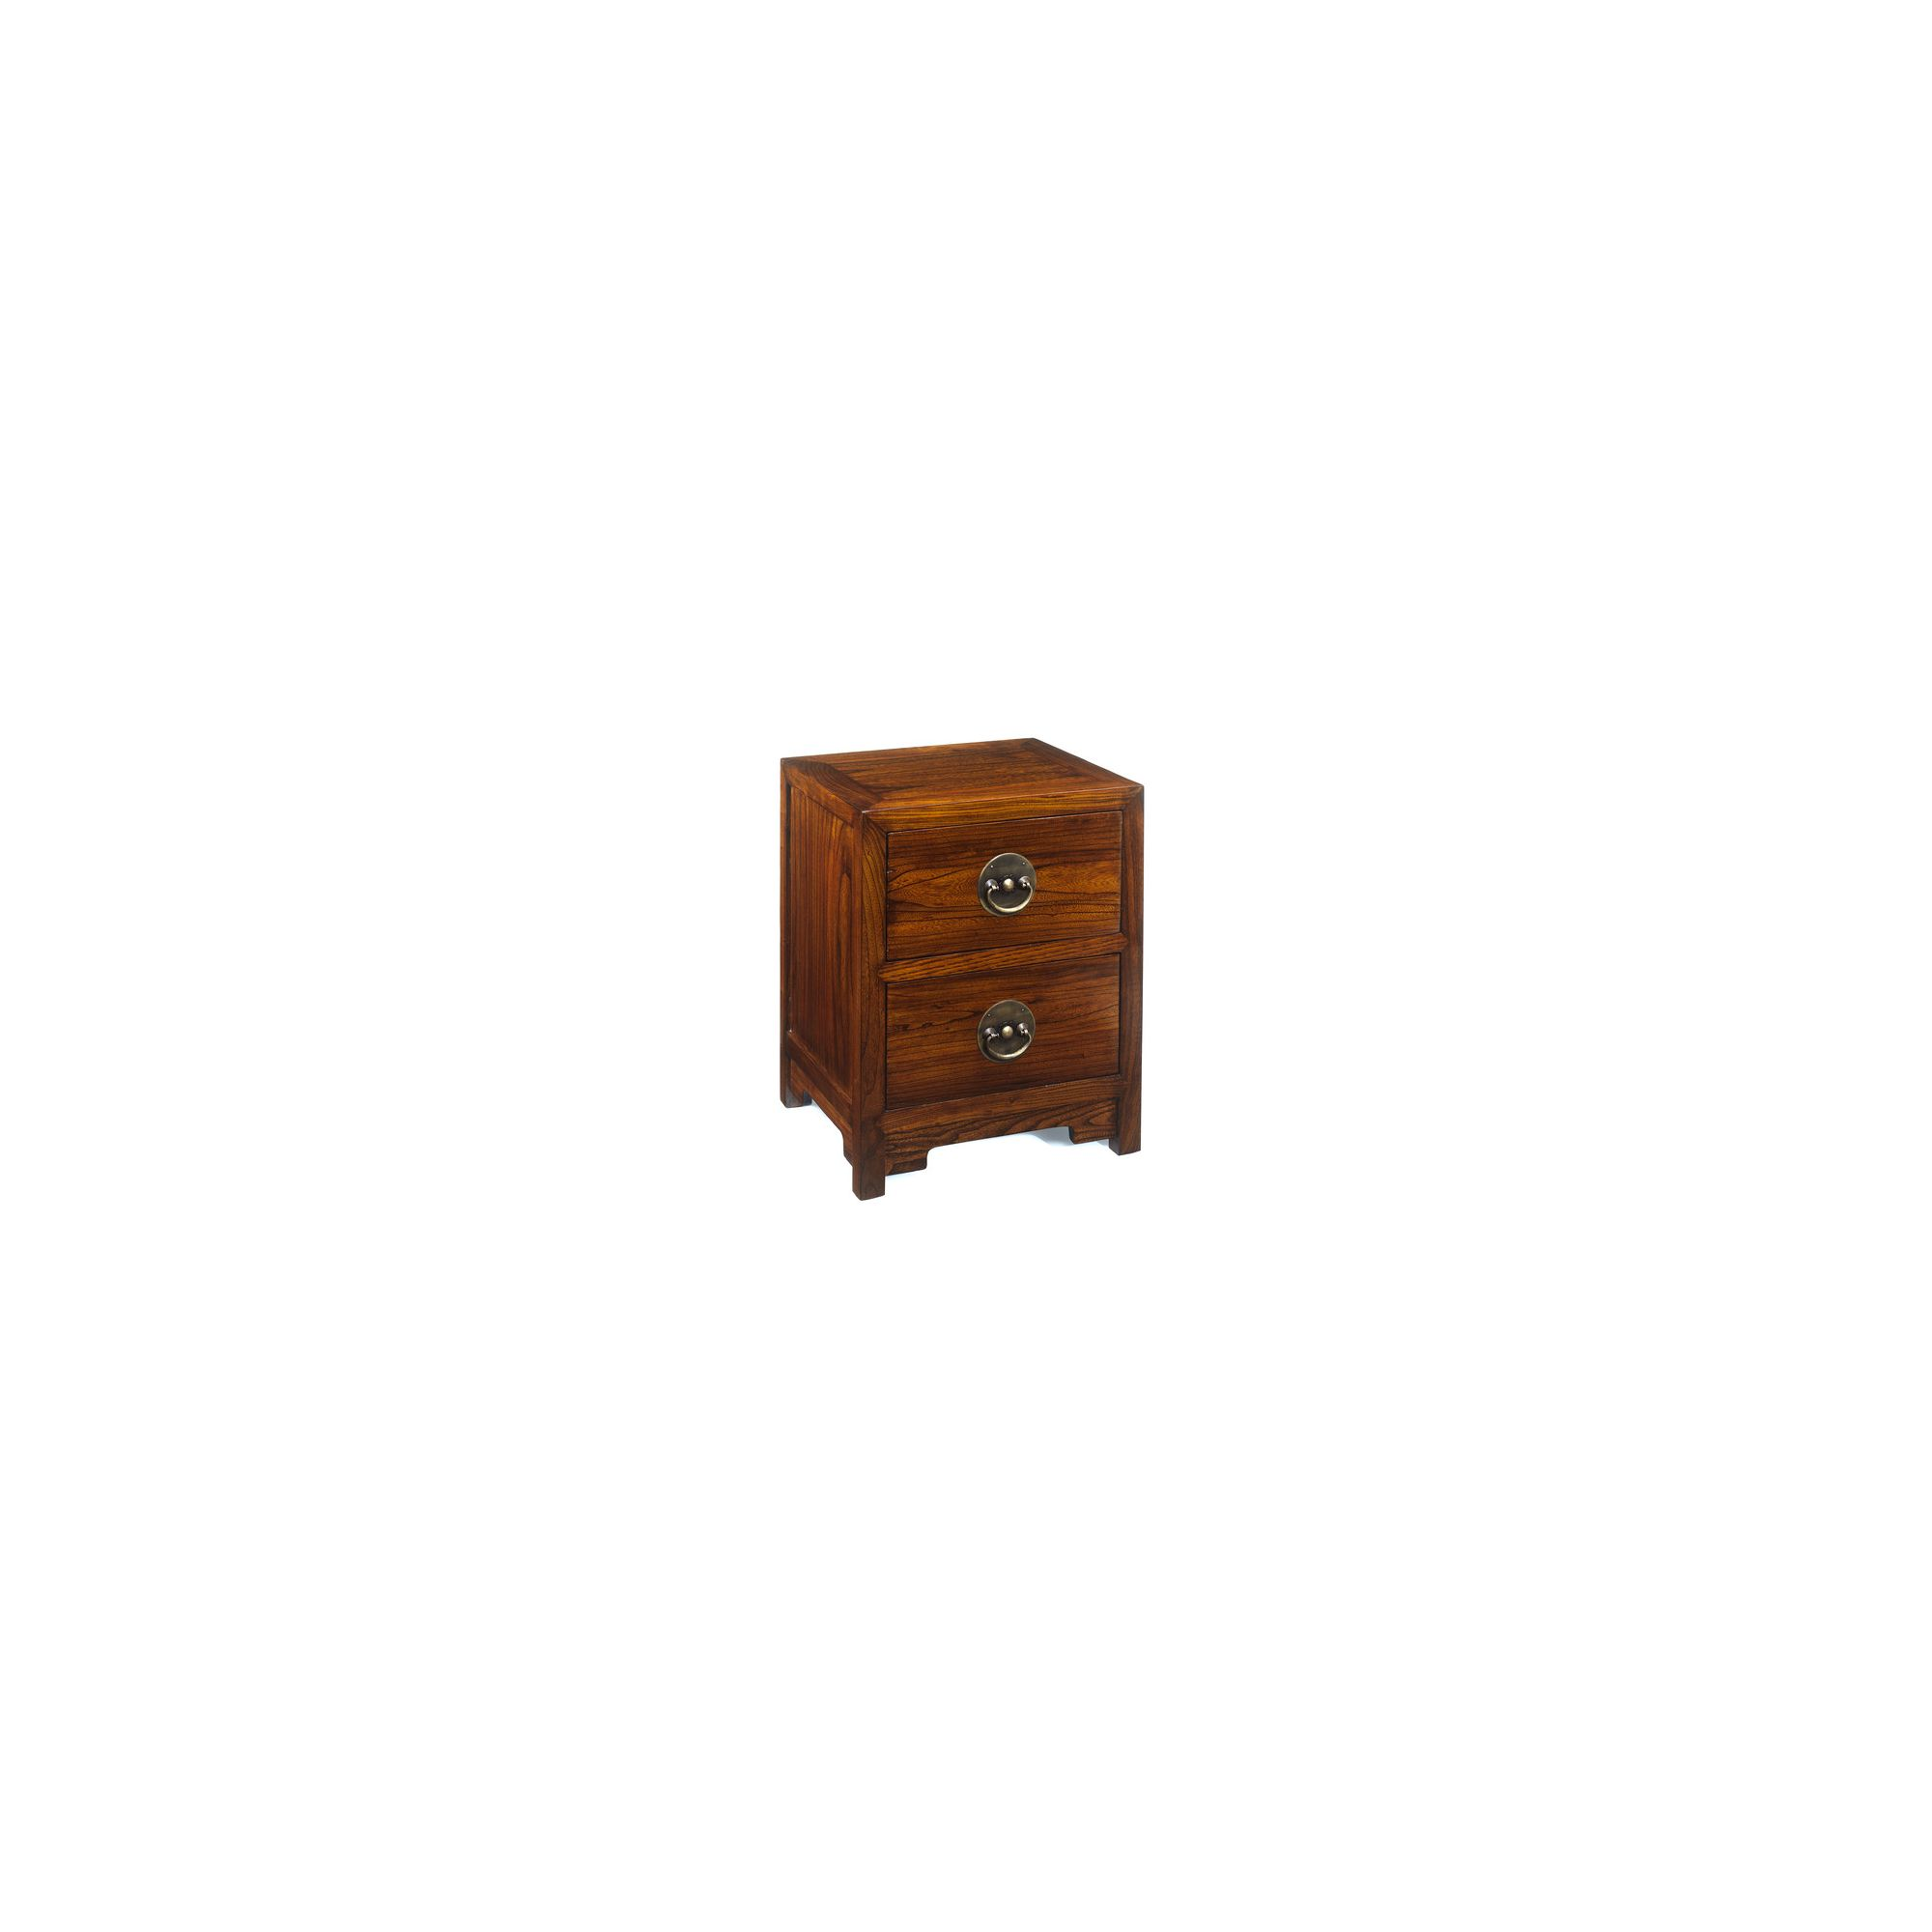 Shimu Chinese Classical Ming Two Drawer Chest - Warm Elm at Tesco Direct